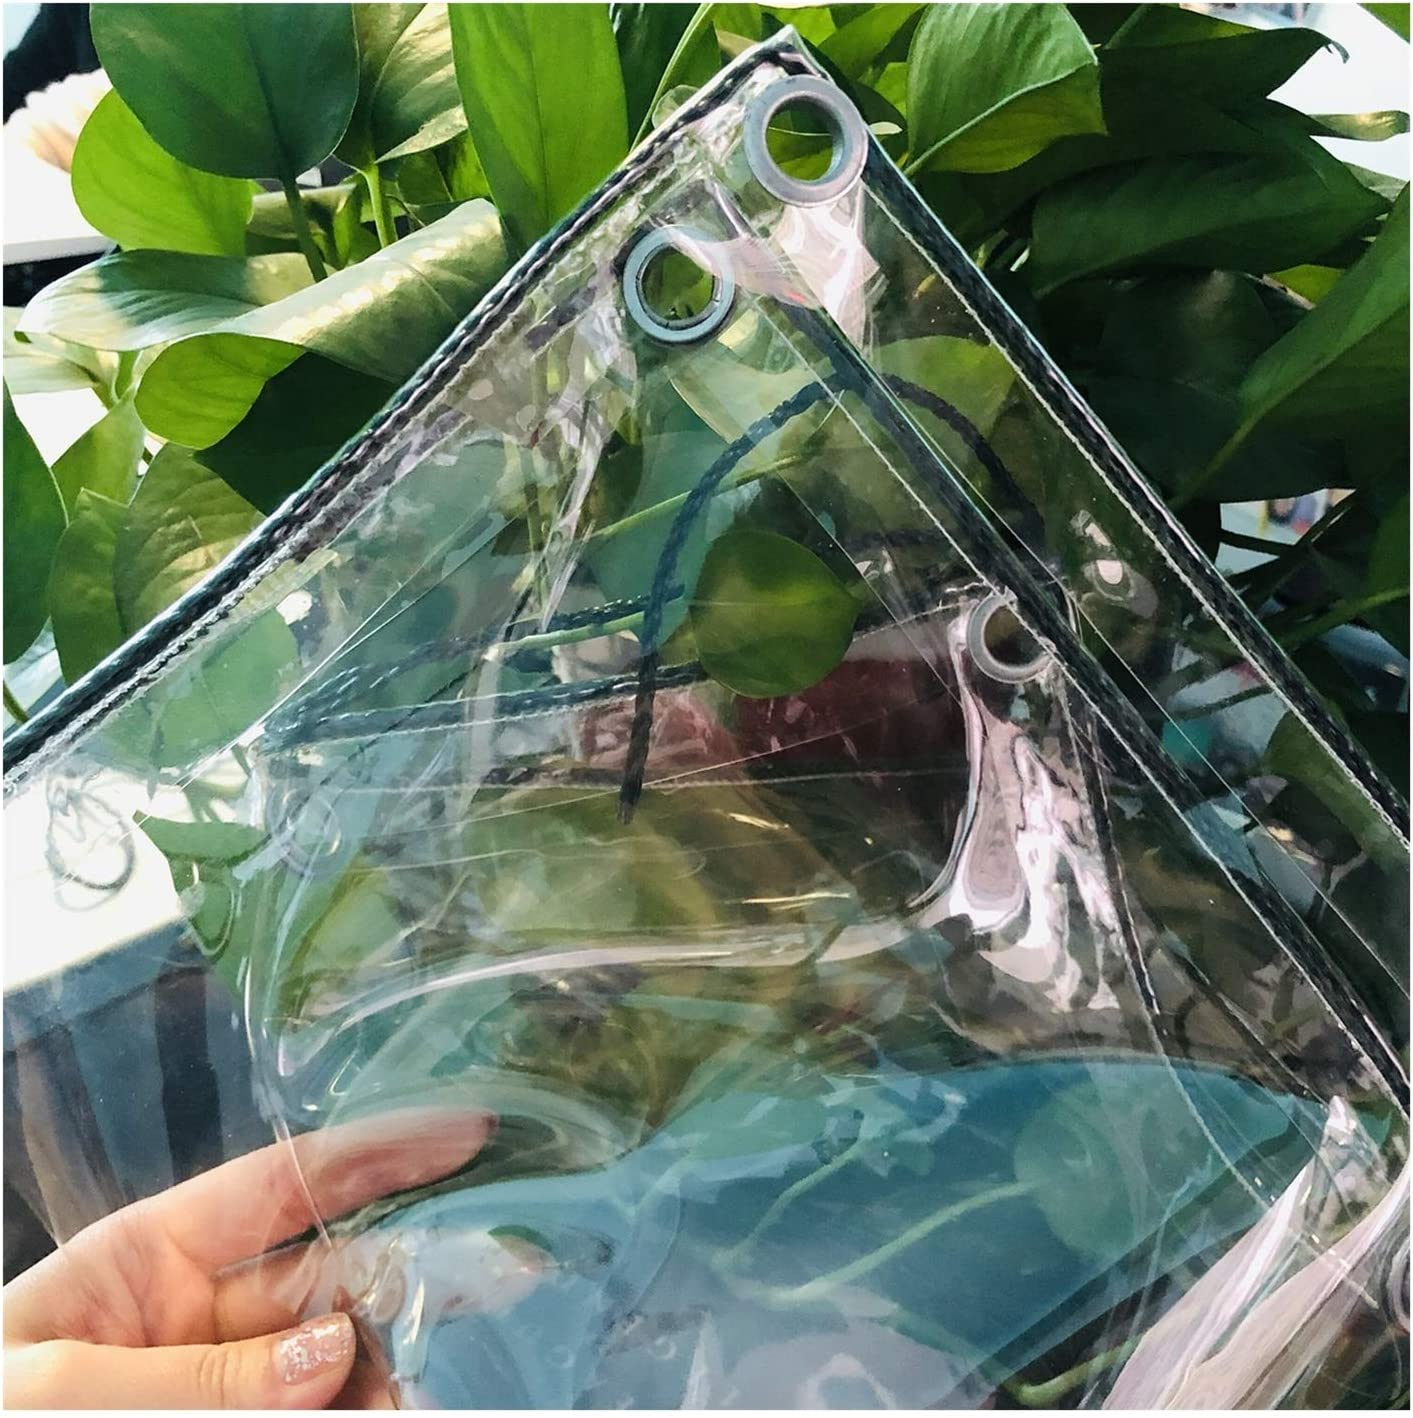 LSXIAO Max 66% OFF Heavy-Duty Tarp Cover Clear Waterproof Screen 0.3 Max 90% OFF Film